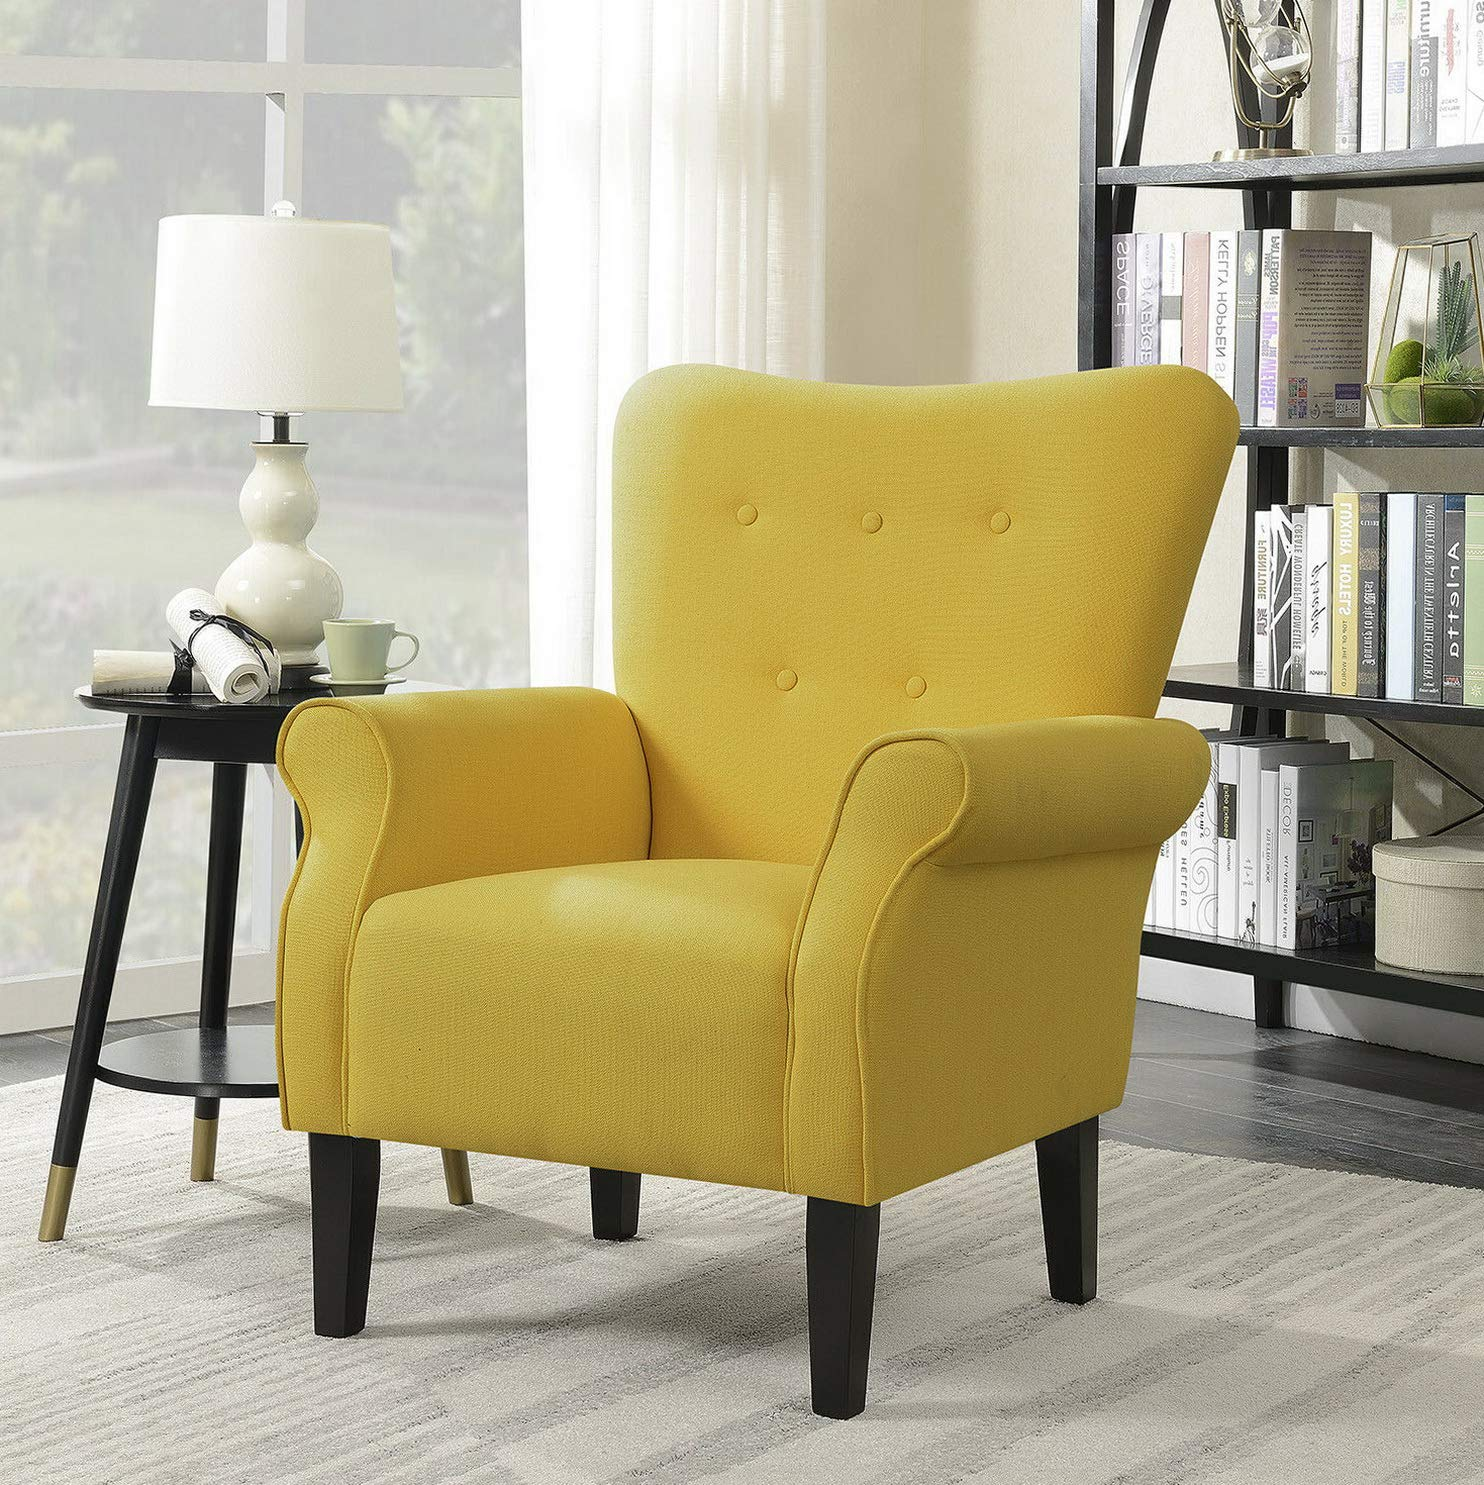 Amazon.com: Hebel Button Back Armchair Accent High Back Living Room Bedroom Upholstered Linen | Model CCNTCHR - 466 |: Kitchen & Dining